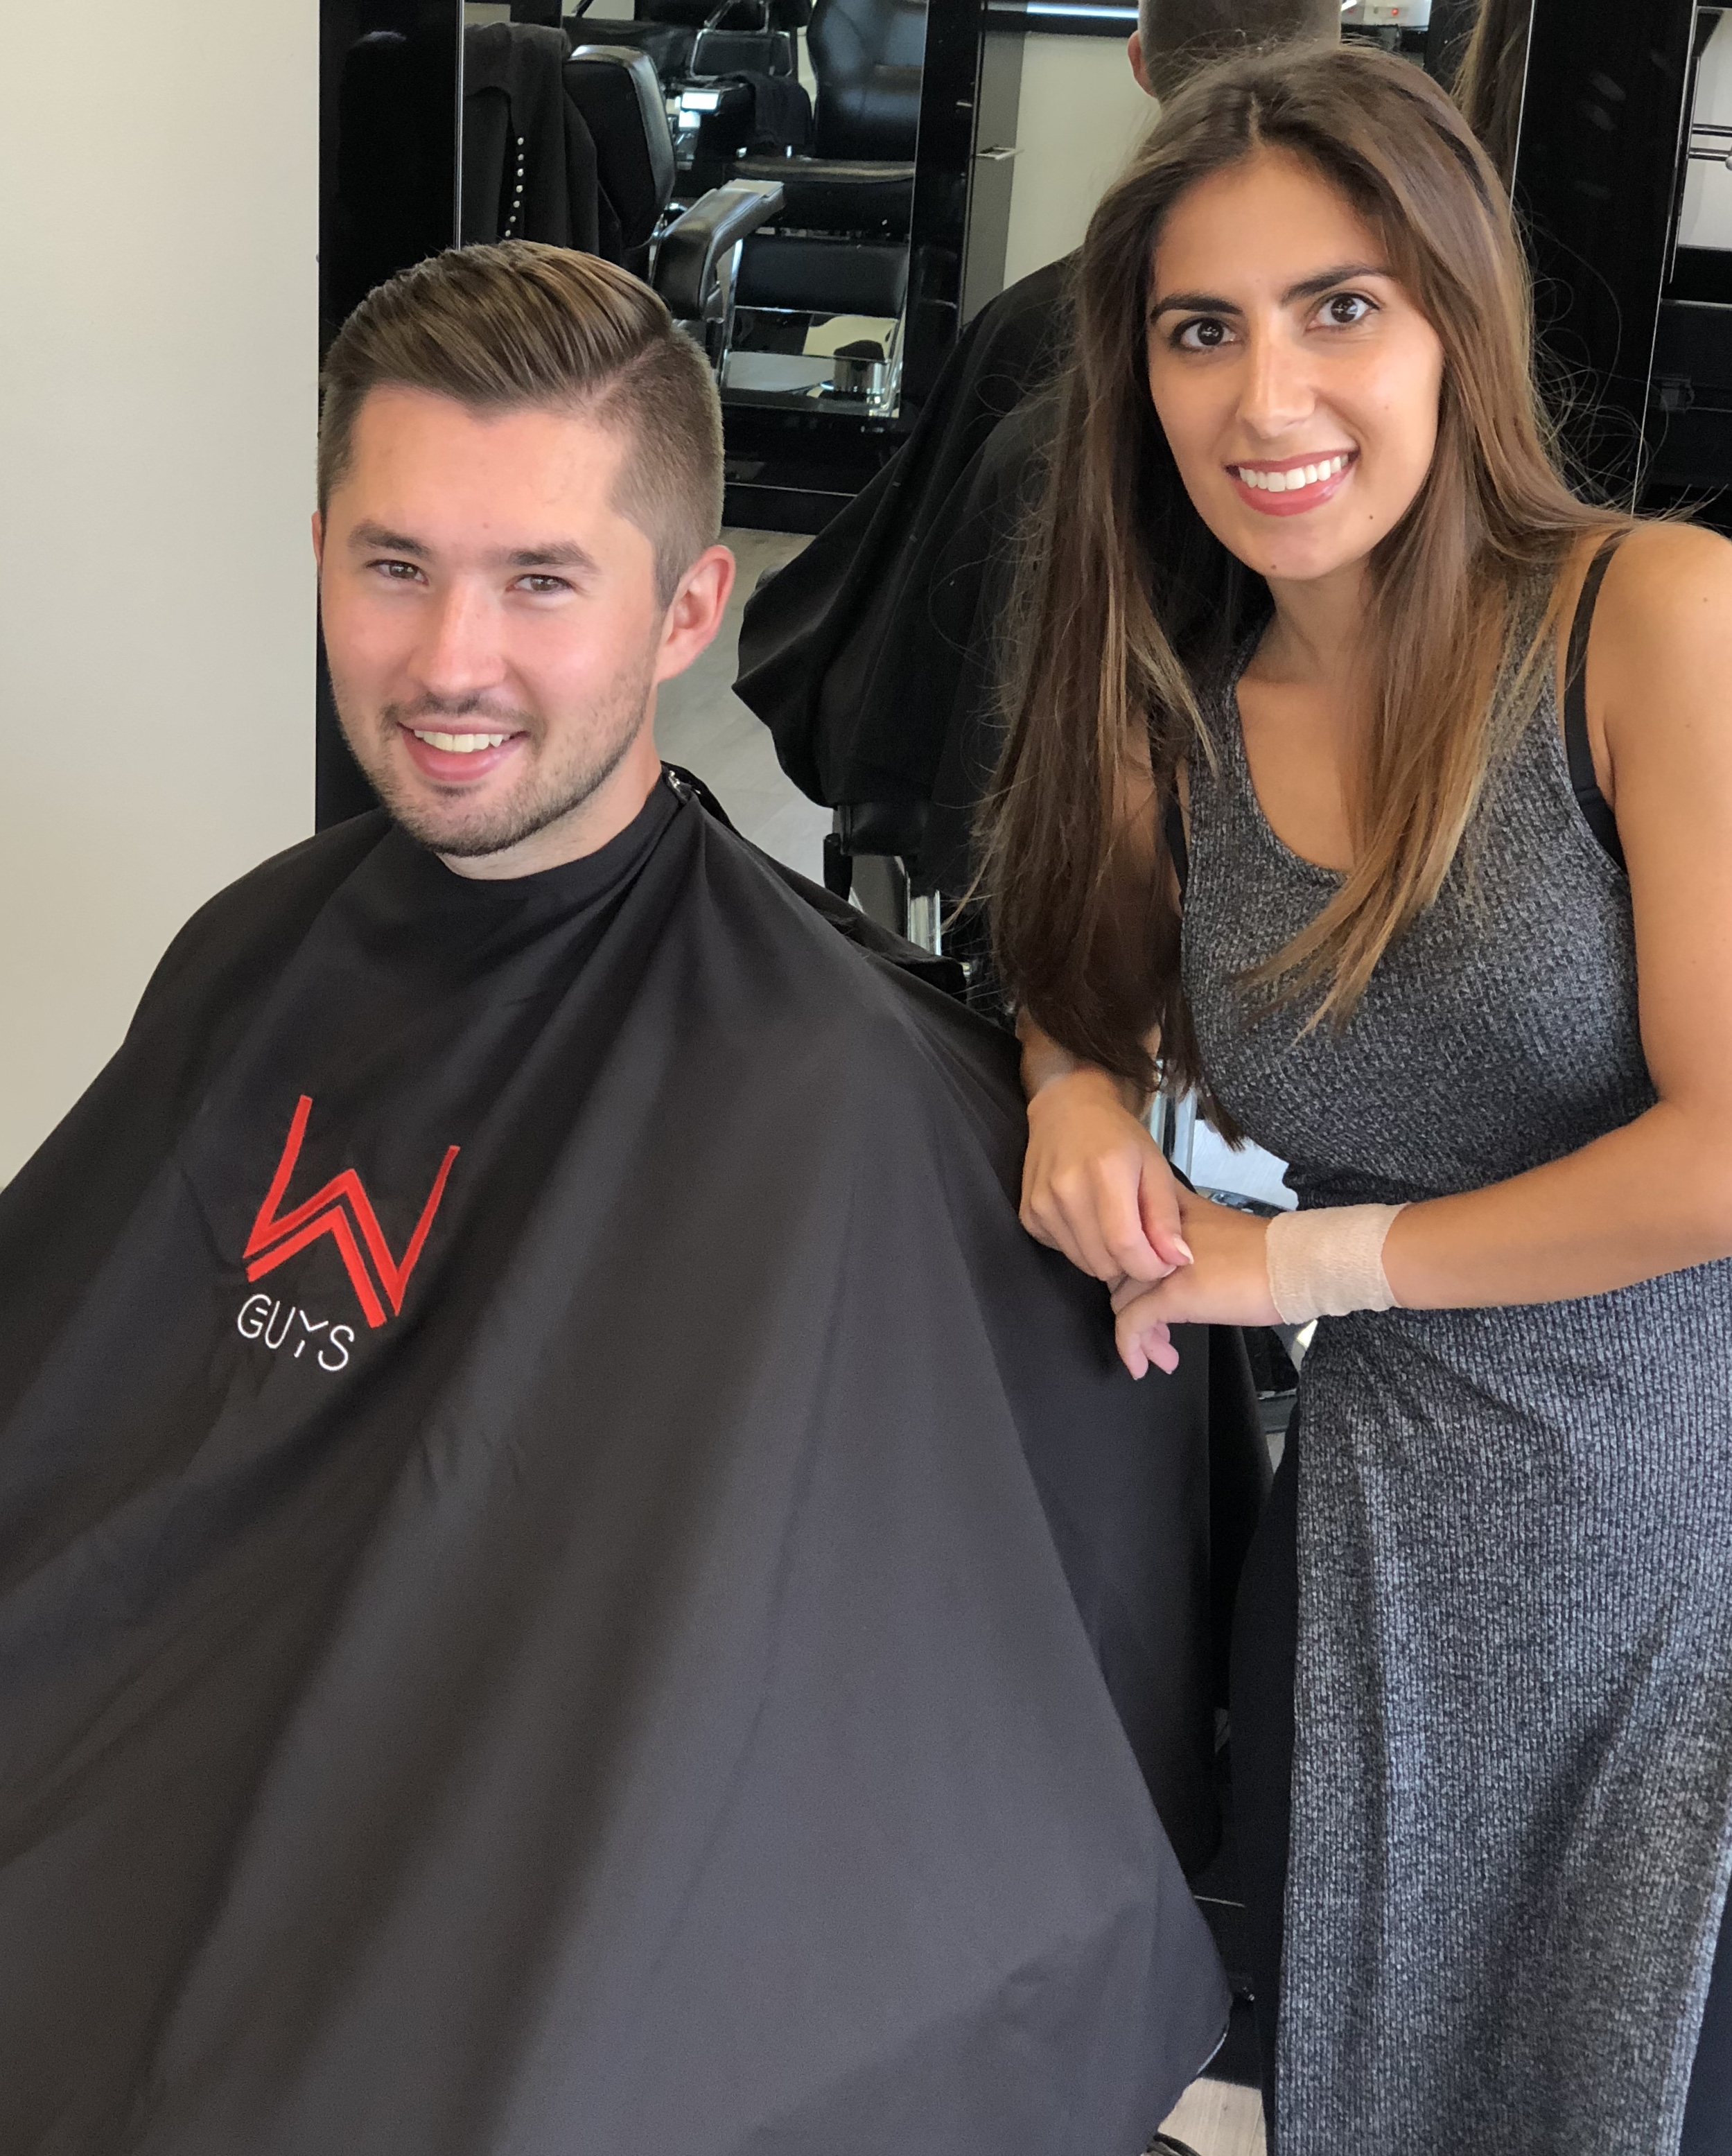 Fun Professional Salon Atmosphere, Delivering Great Grooming Experience For All of Us. -